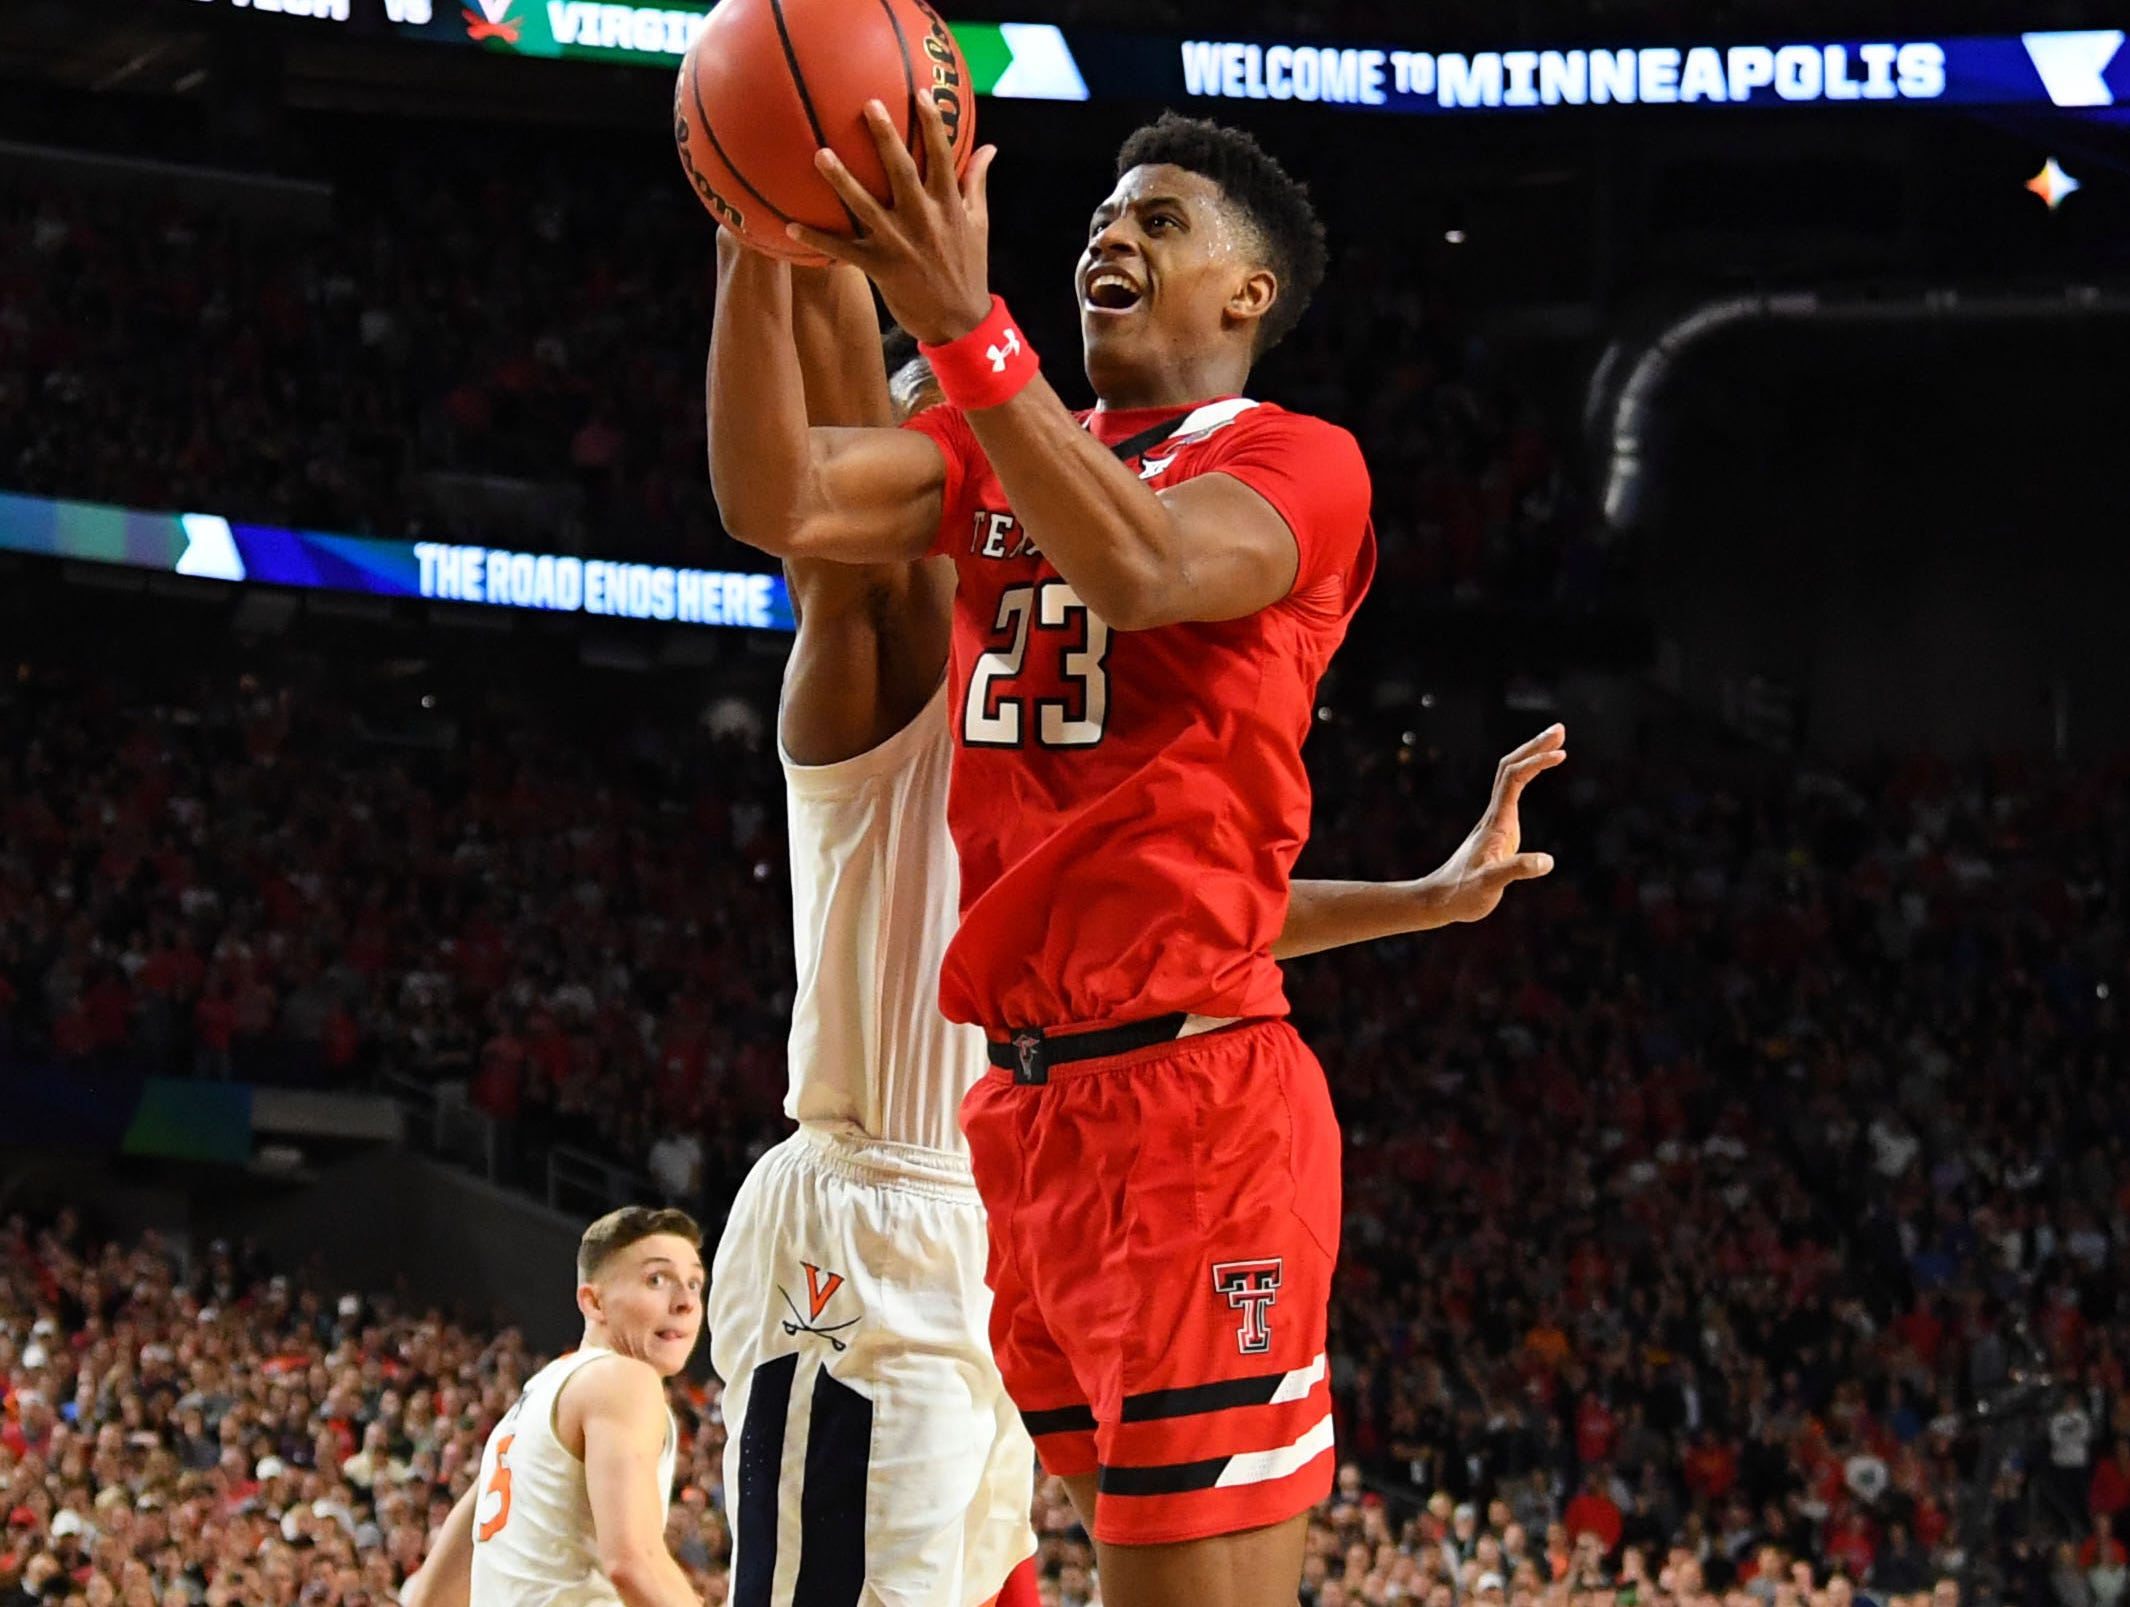 Apr 8, 2019; Minneapolis, MN, USA; Texas Tech Red Raiders guard Jarrett Culver (23) shoots the ball against Virginia Cavaliers guard De'Andre Hunter (12) during the second half in the championship game of the 2019 men's Final Four at US Bank Stadium. Mandatory Credit: Bob Donnan-USA TODAY Sports